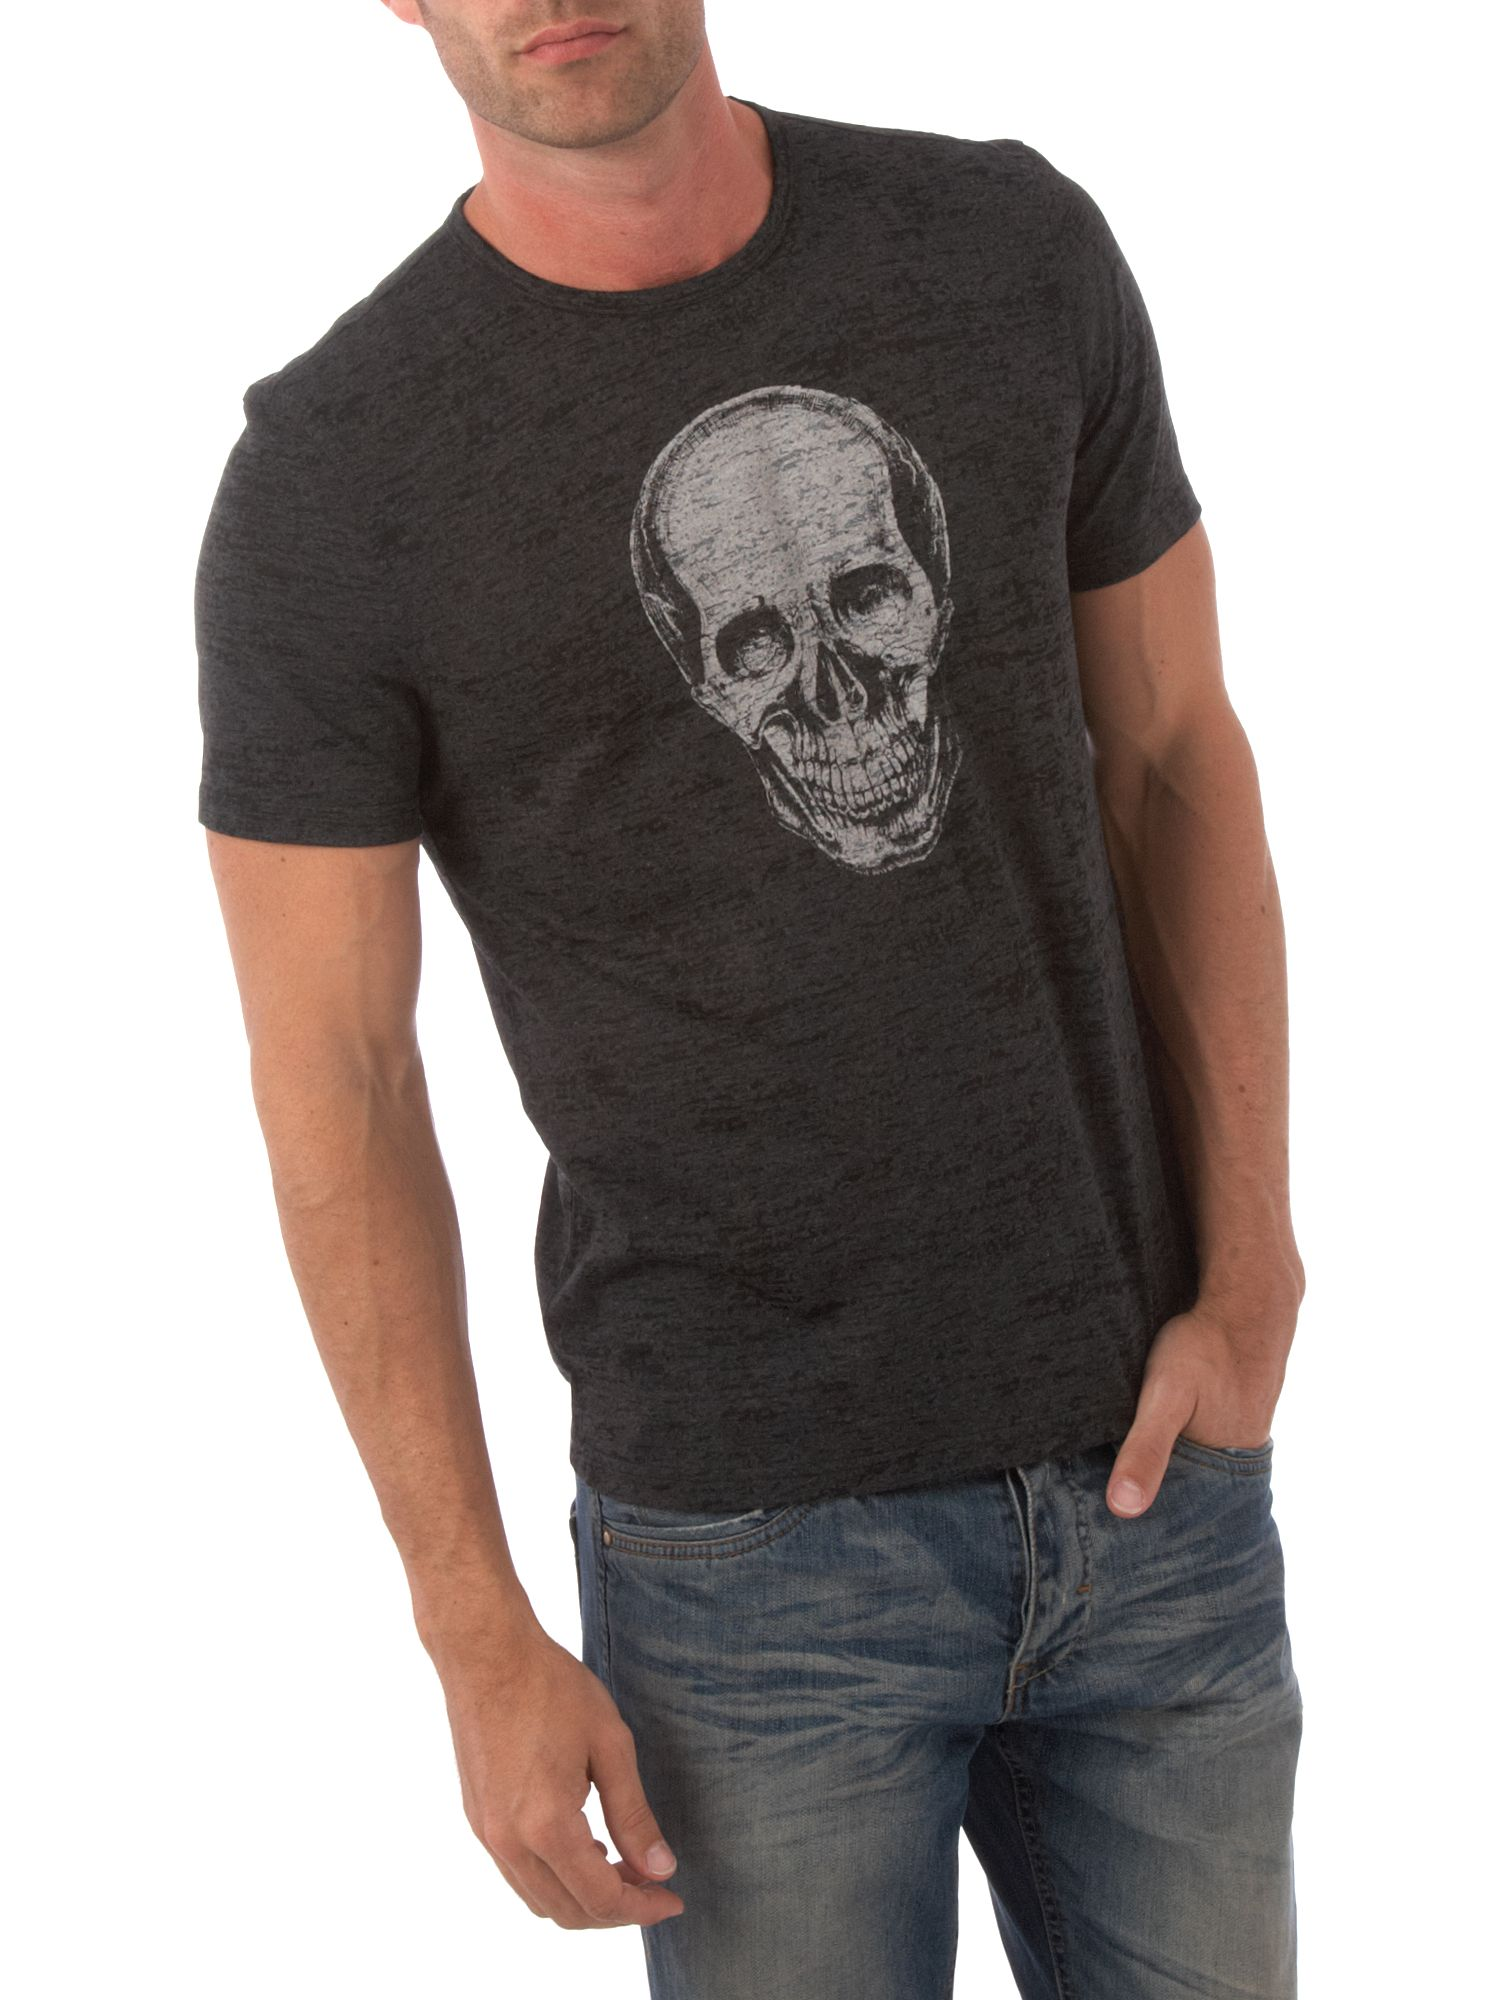 John Varvatos Skull graphic tee Grey product image